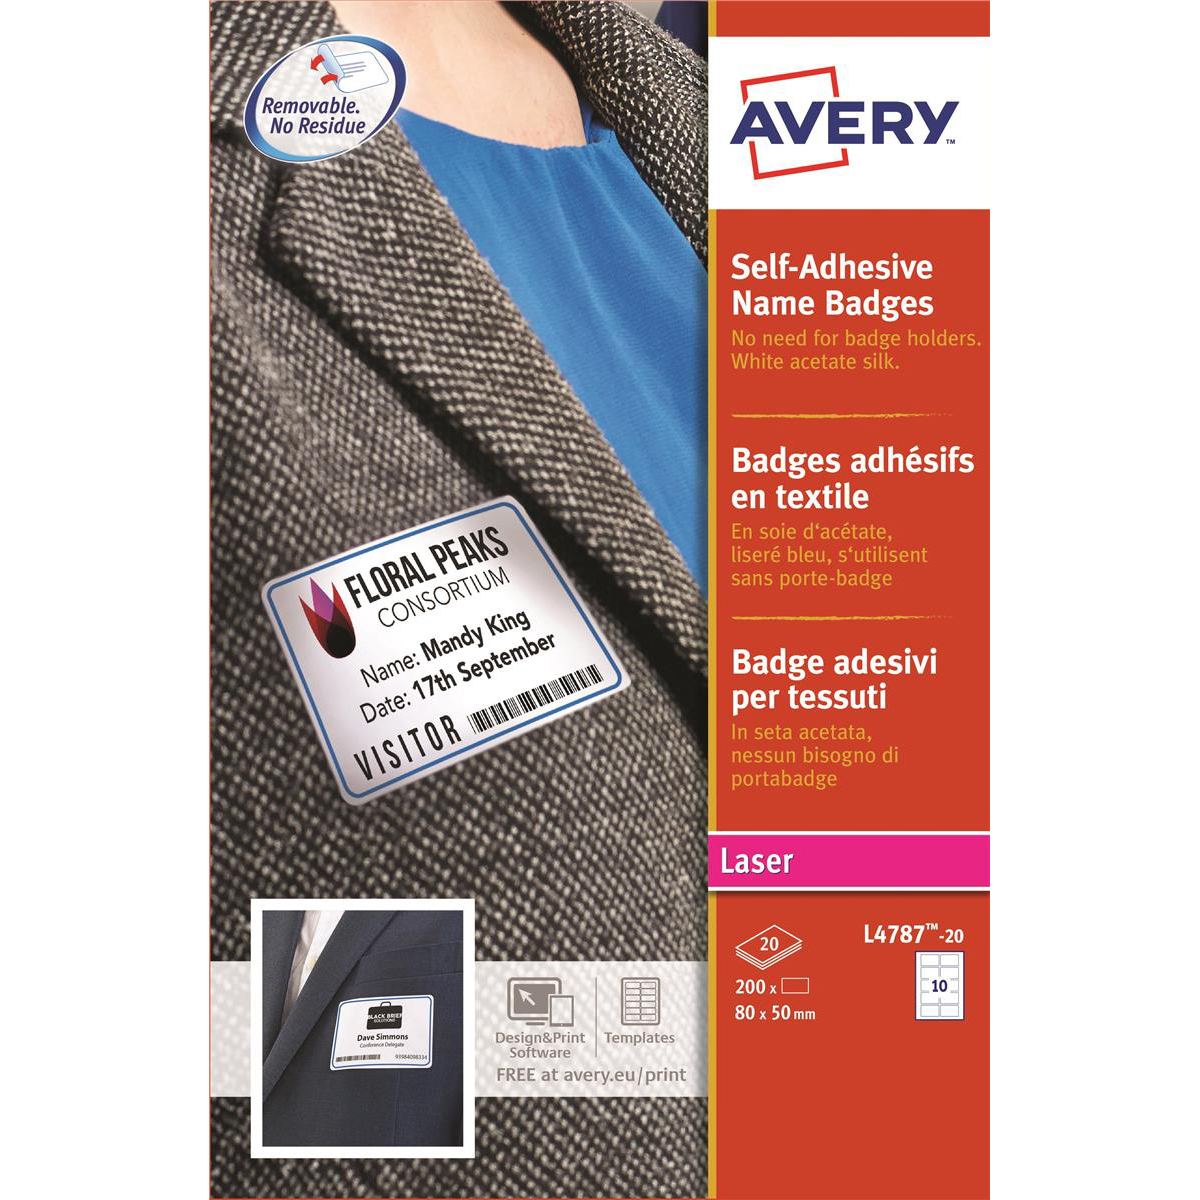 ID Badges Avery Name Badge Labels Laser Self-adhesive 80x50mm Blue Border Ref L4787-20 200 Labels